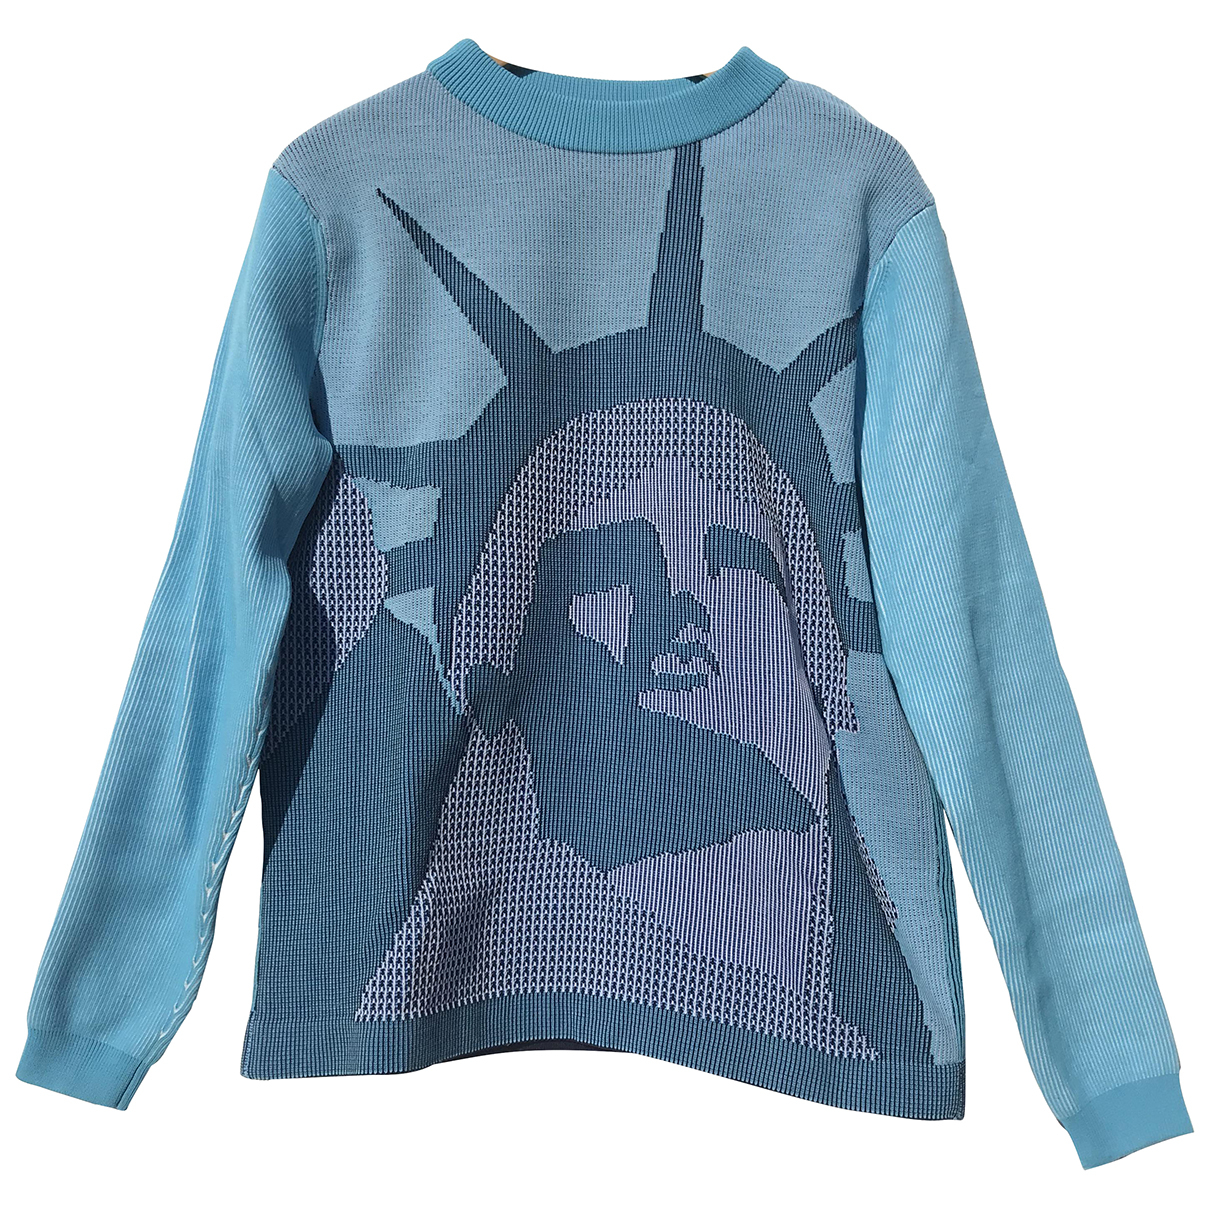 Kenzo \N Blue Knitwear & Sweatshirts for Men S International